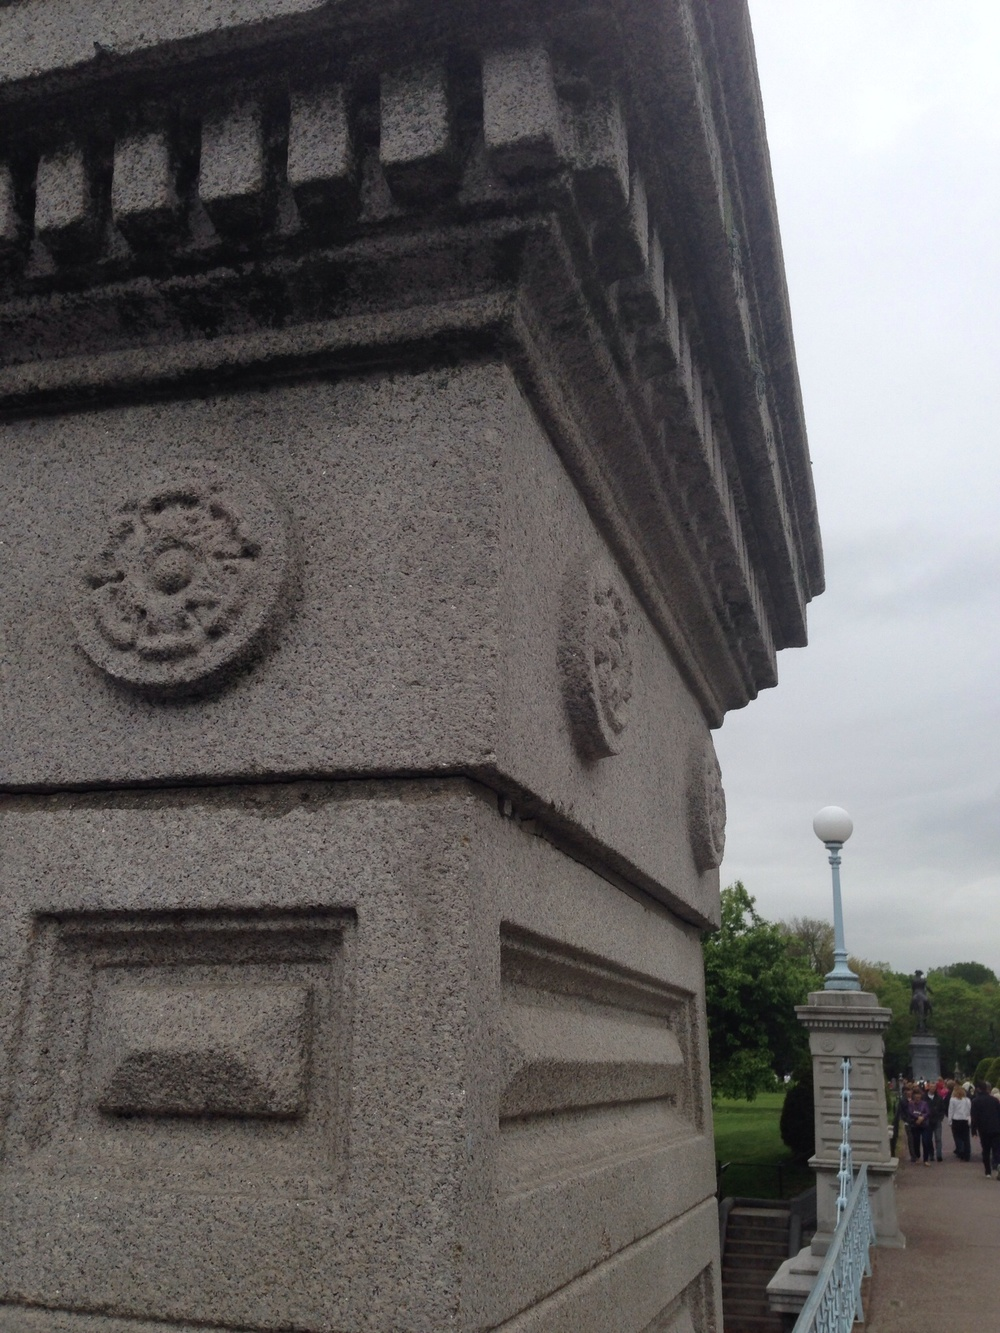 This column is part of a bridge crossing in The Public Gardens.  I like the shape of the dentil mould and the pyramid center panel on each side. Might make a nice island detail...